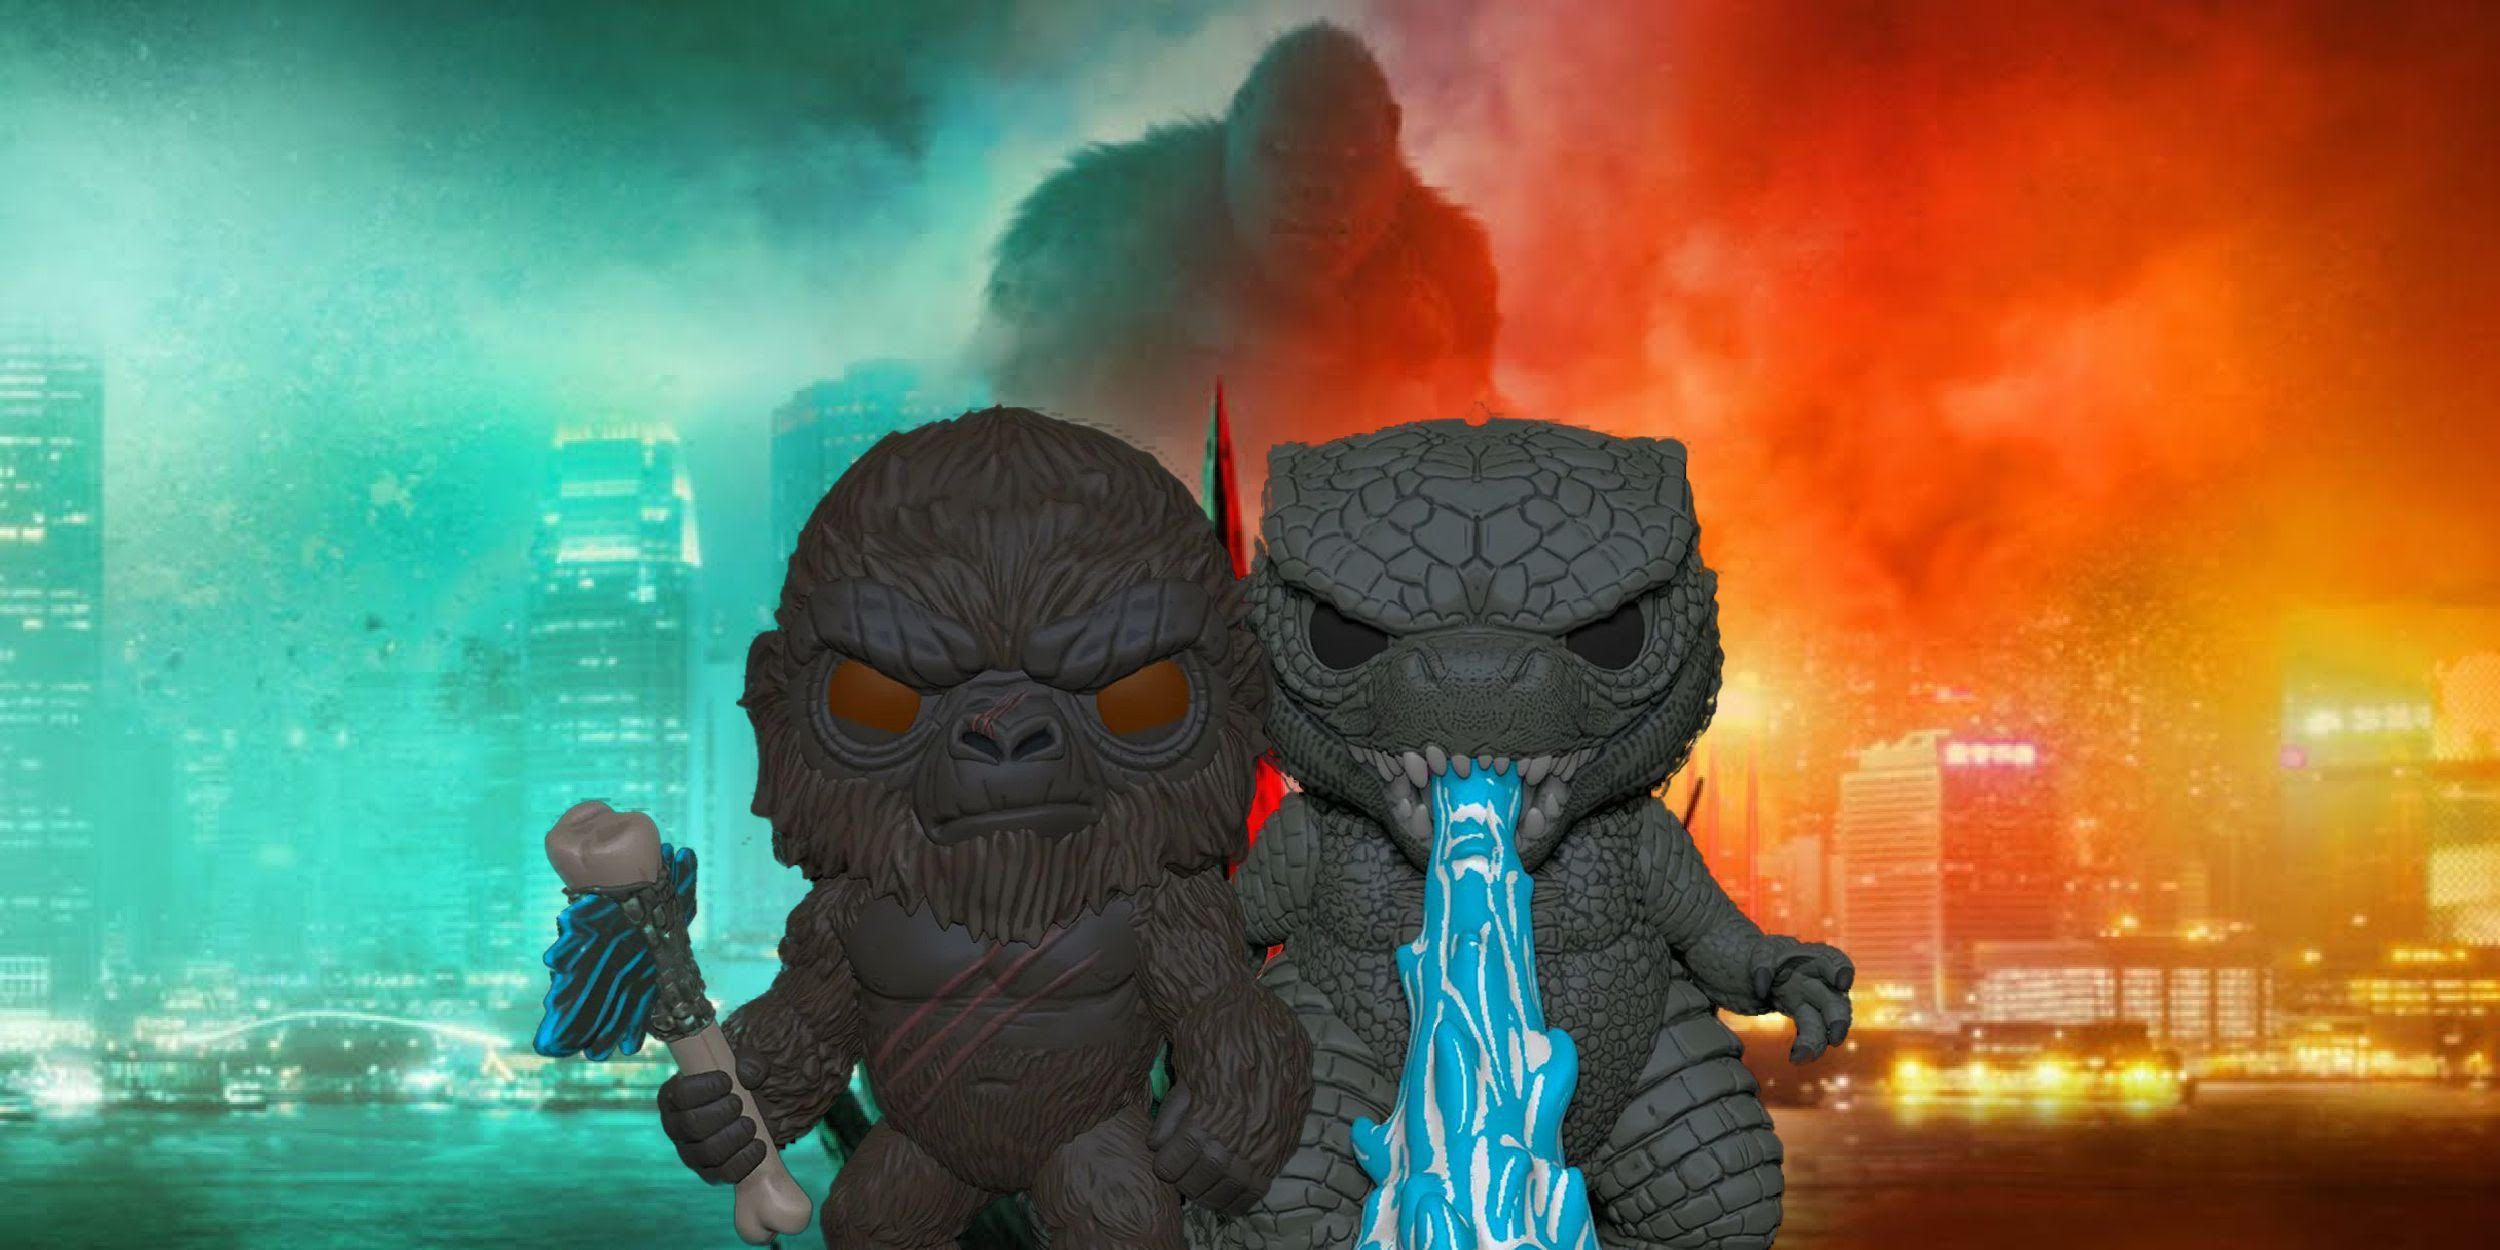 Godzilla Vs Kong Funko Pops Revealed Ahead of the Monsters' Epic Battle